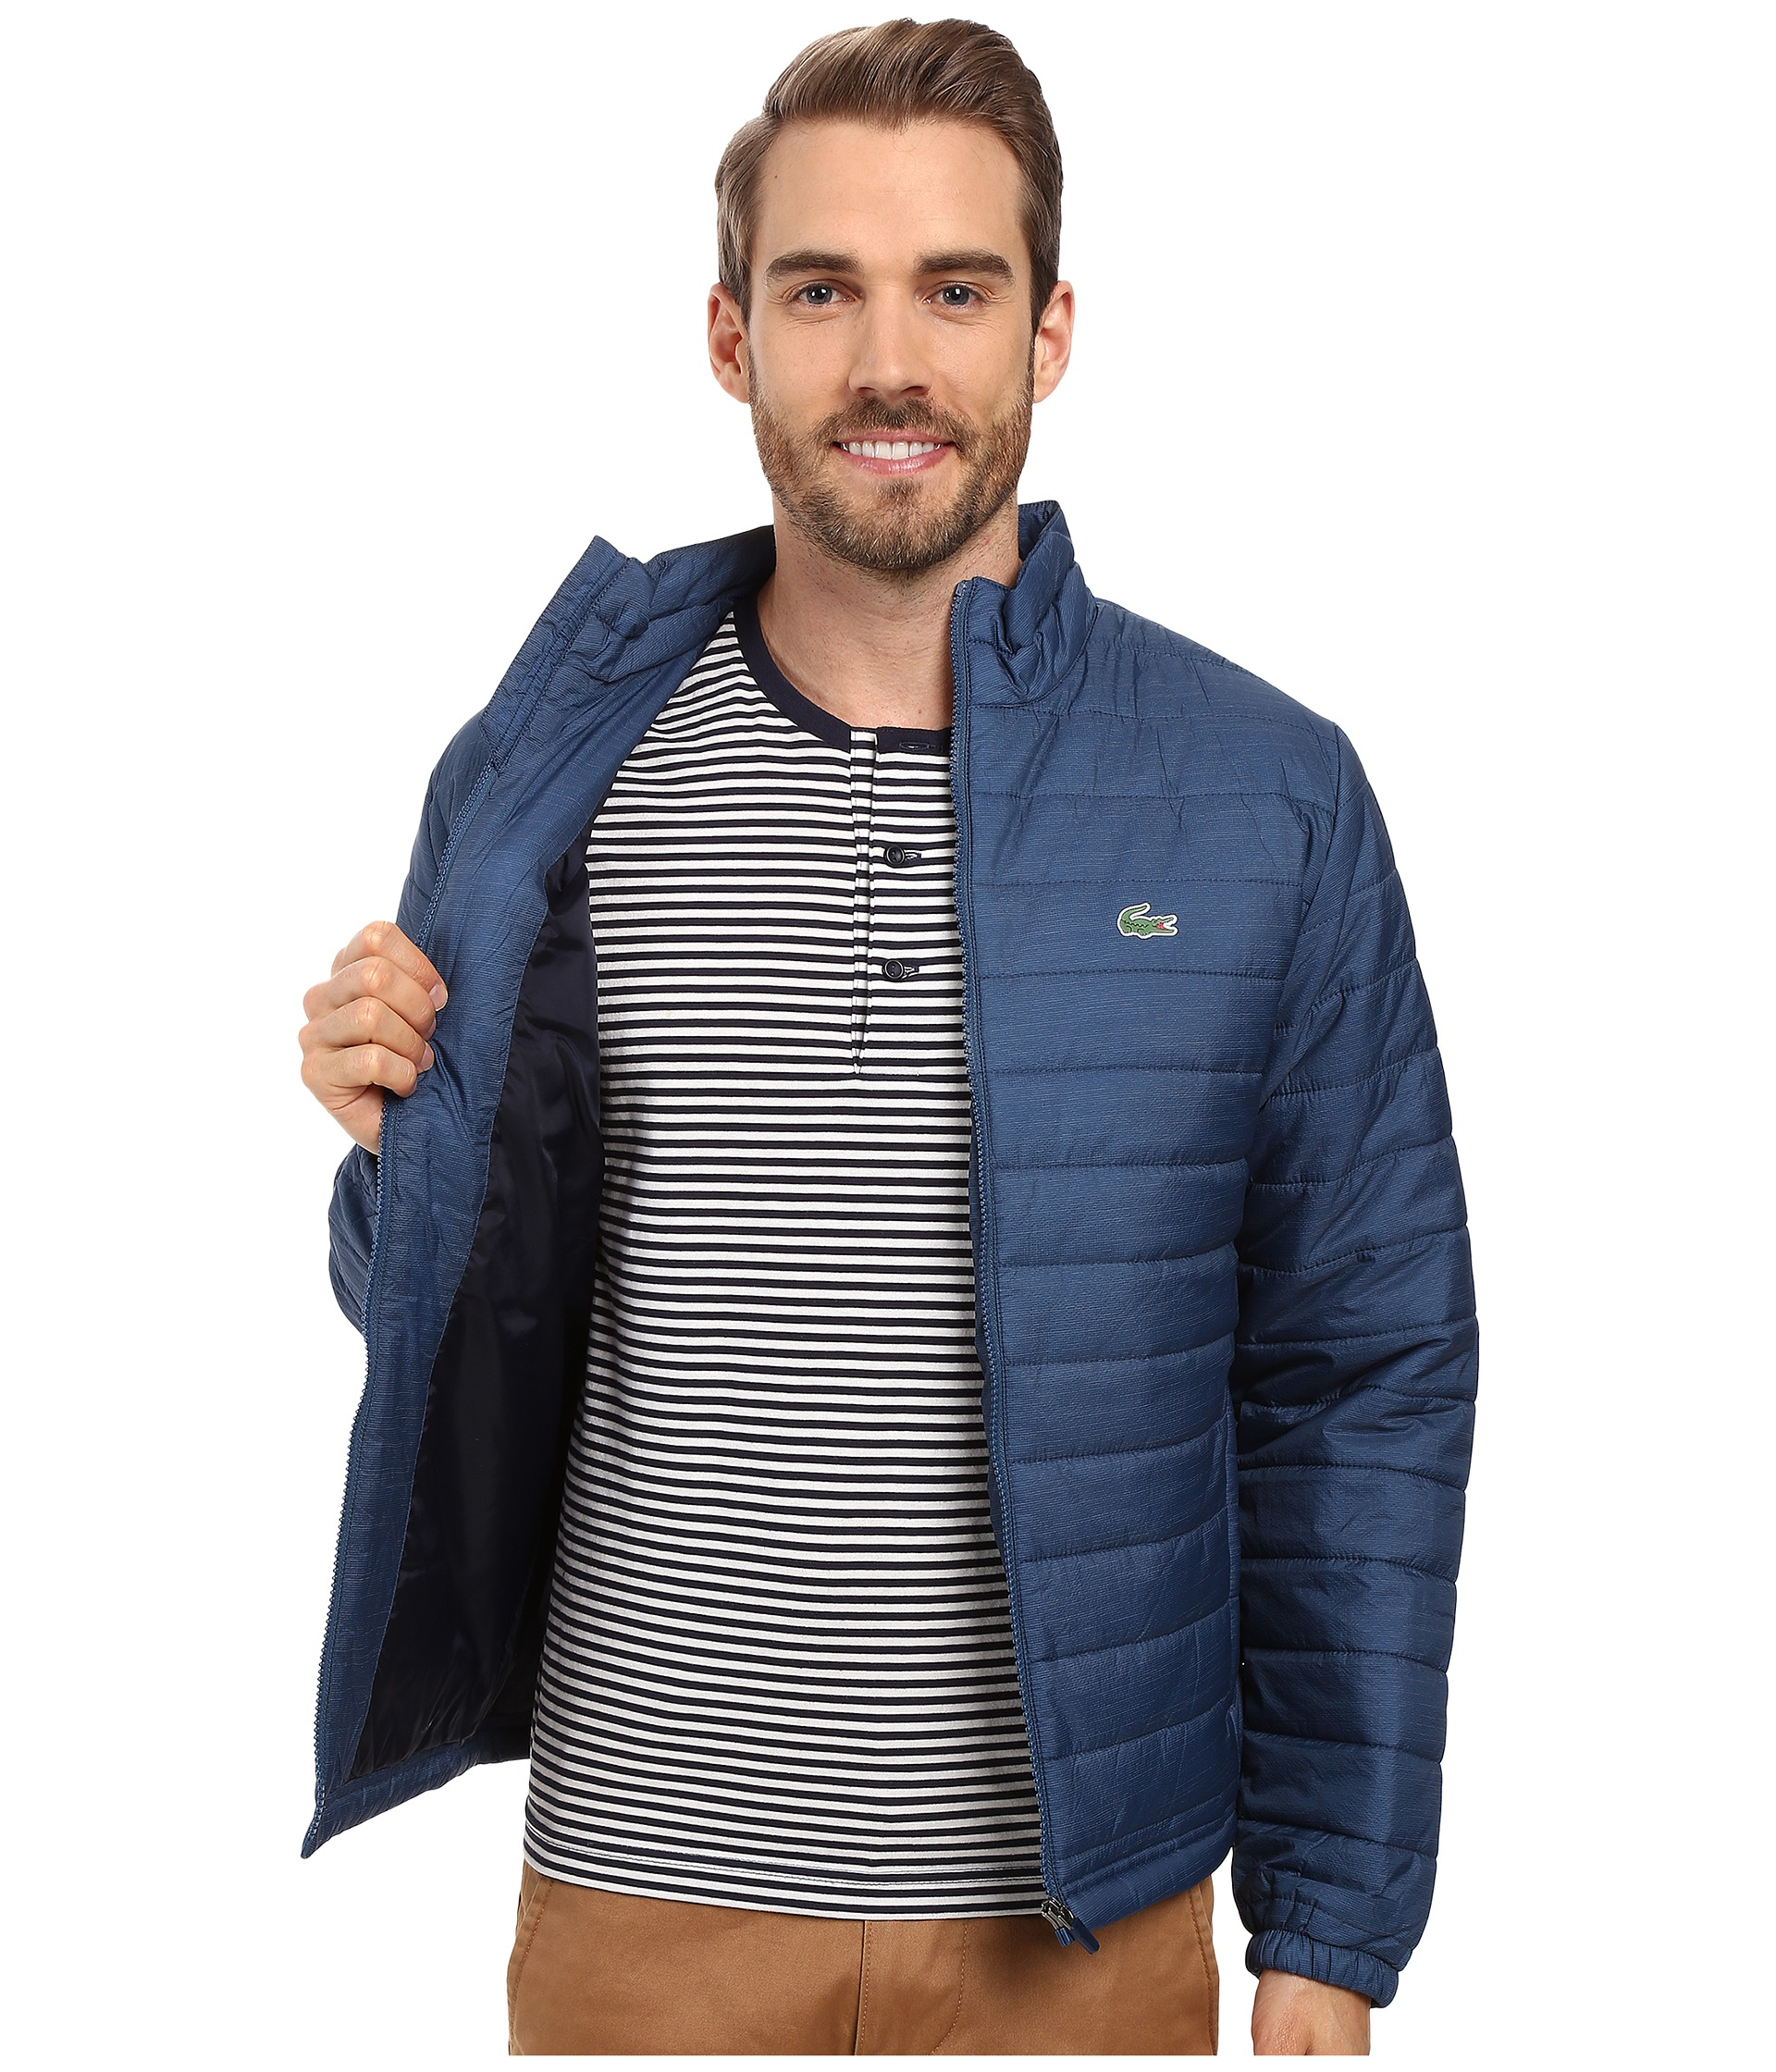 lacoste sport ripstop jacket free shipping. Black Bedroom Furniture Sets. Home Design Ideas